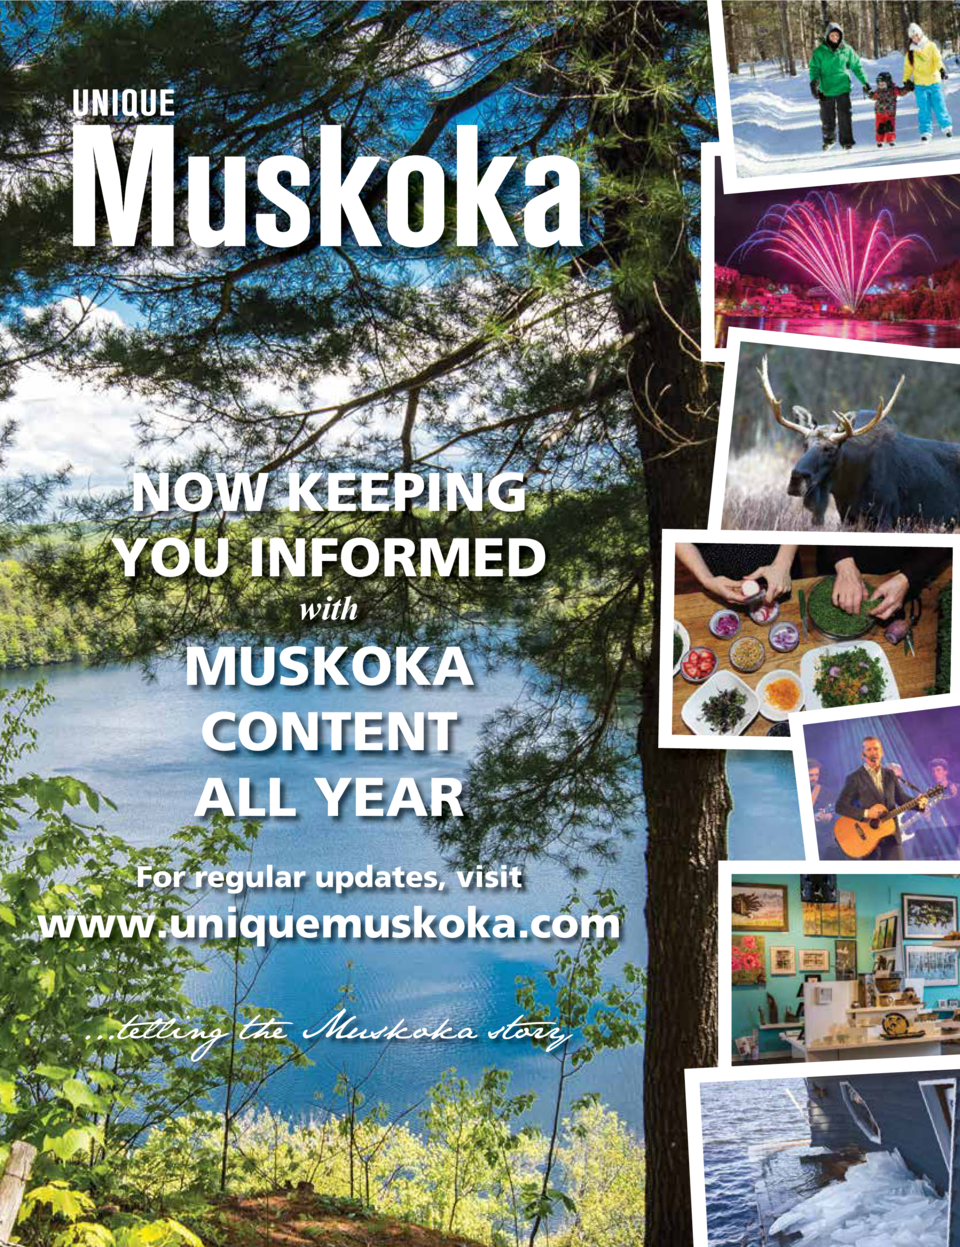 NOW KEEPING YOU INFORMED with  MUSKOKA CONTENT ALL YEAR For regular updates, visit  www.uniquemuskoka.com ...telling the M...